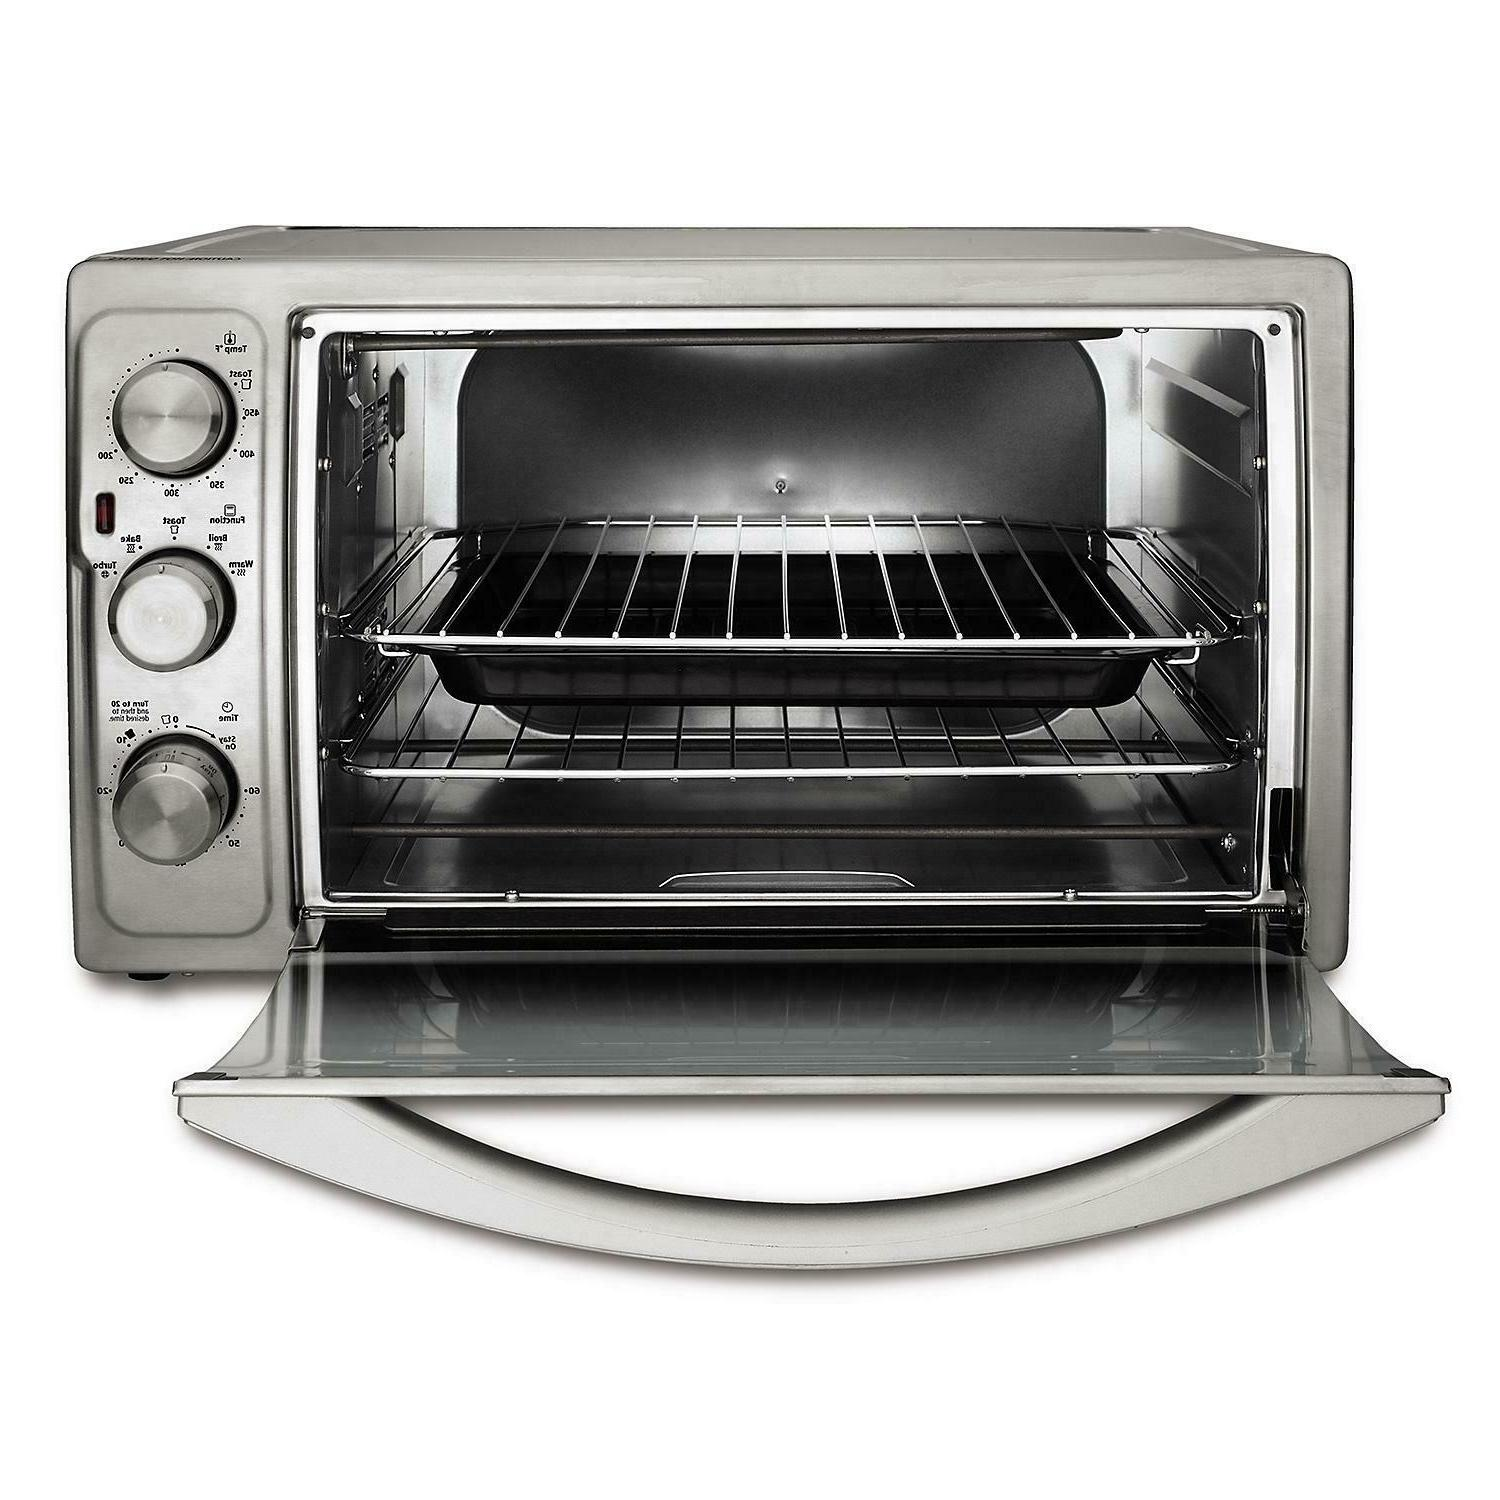 Oster Adjustable Countertop Convection Oven, Steel